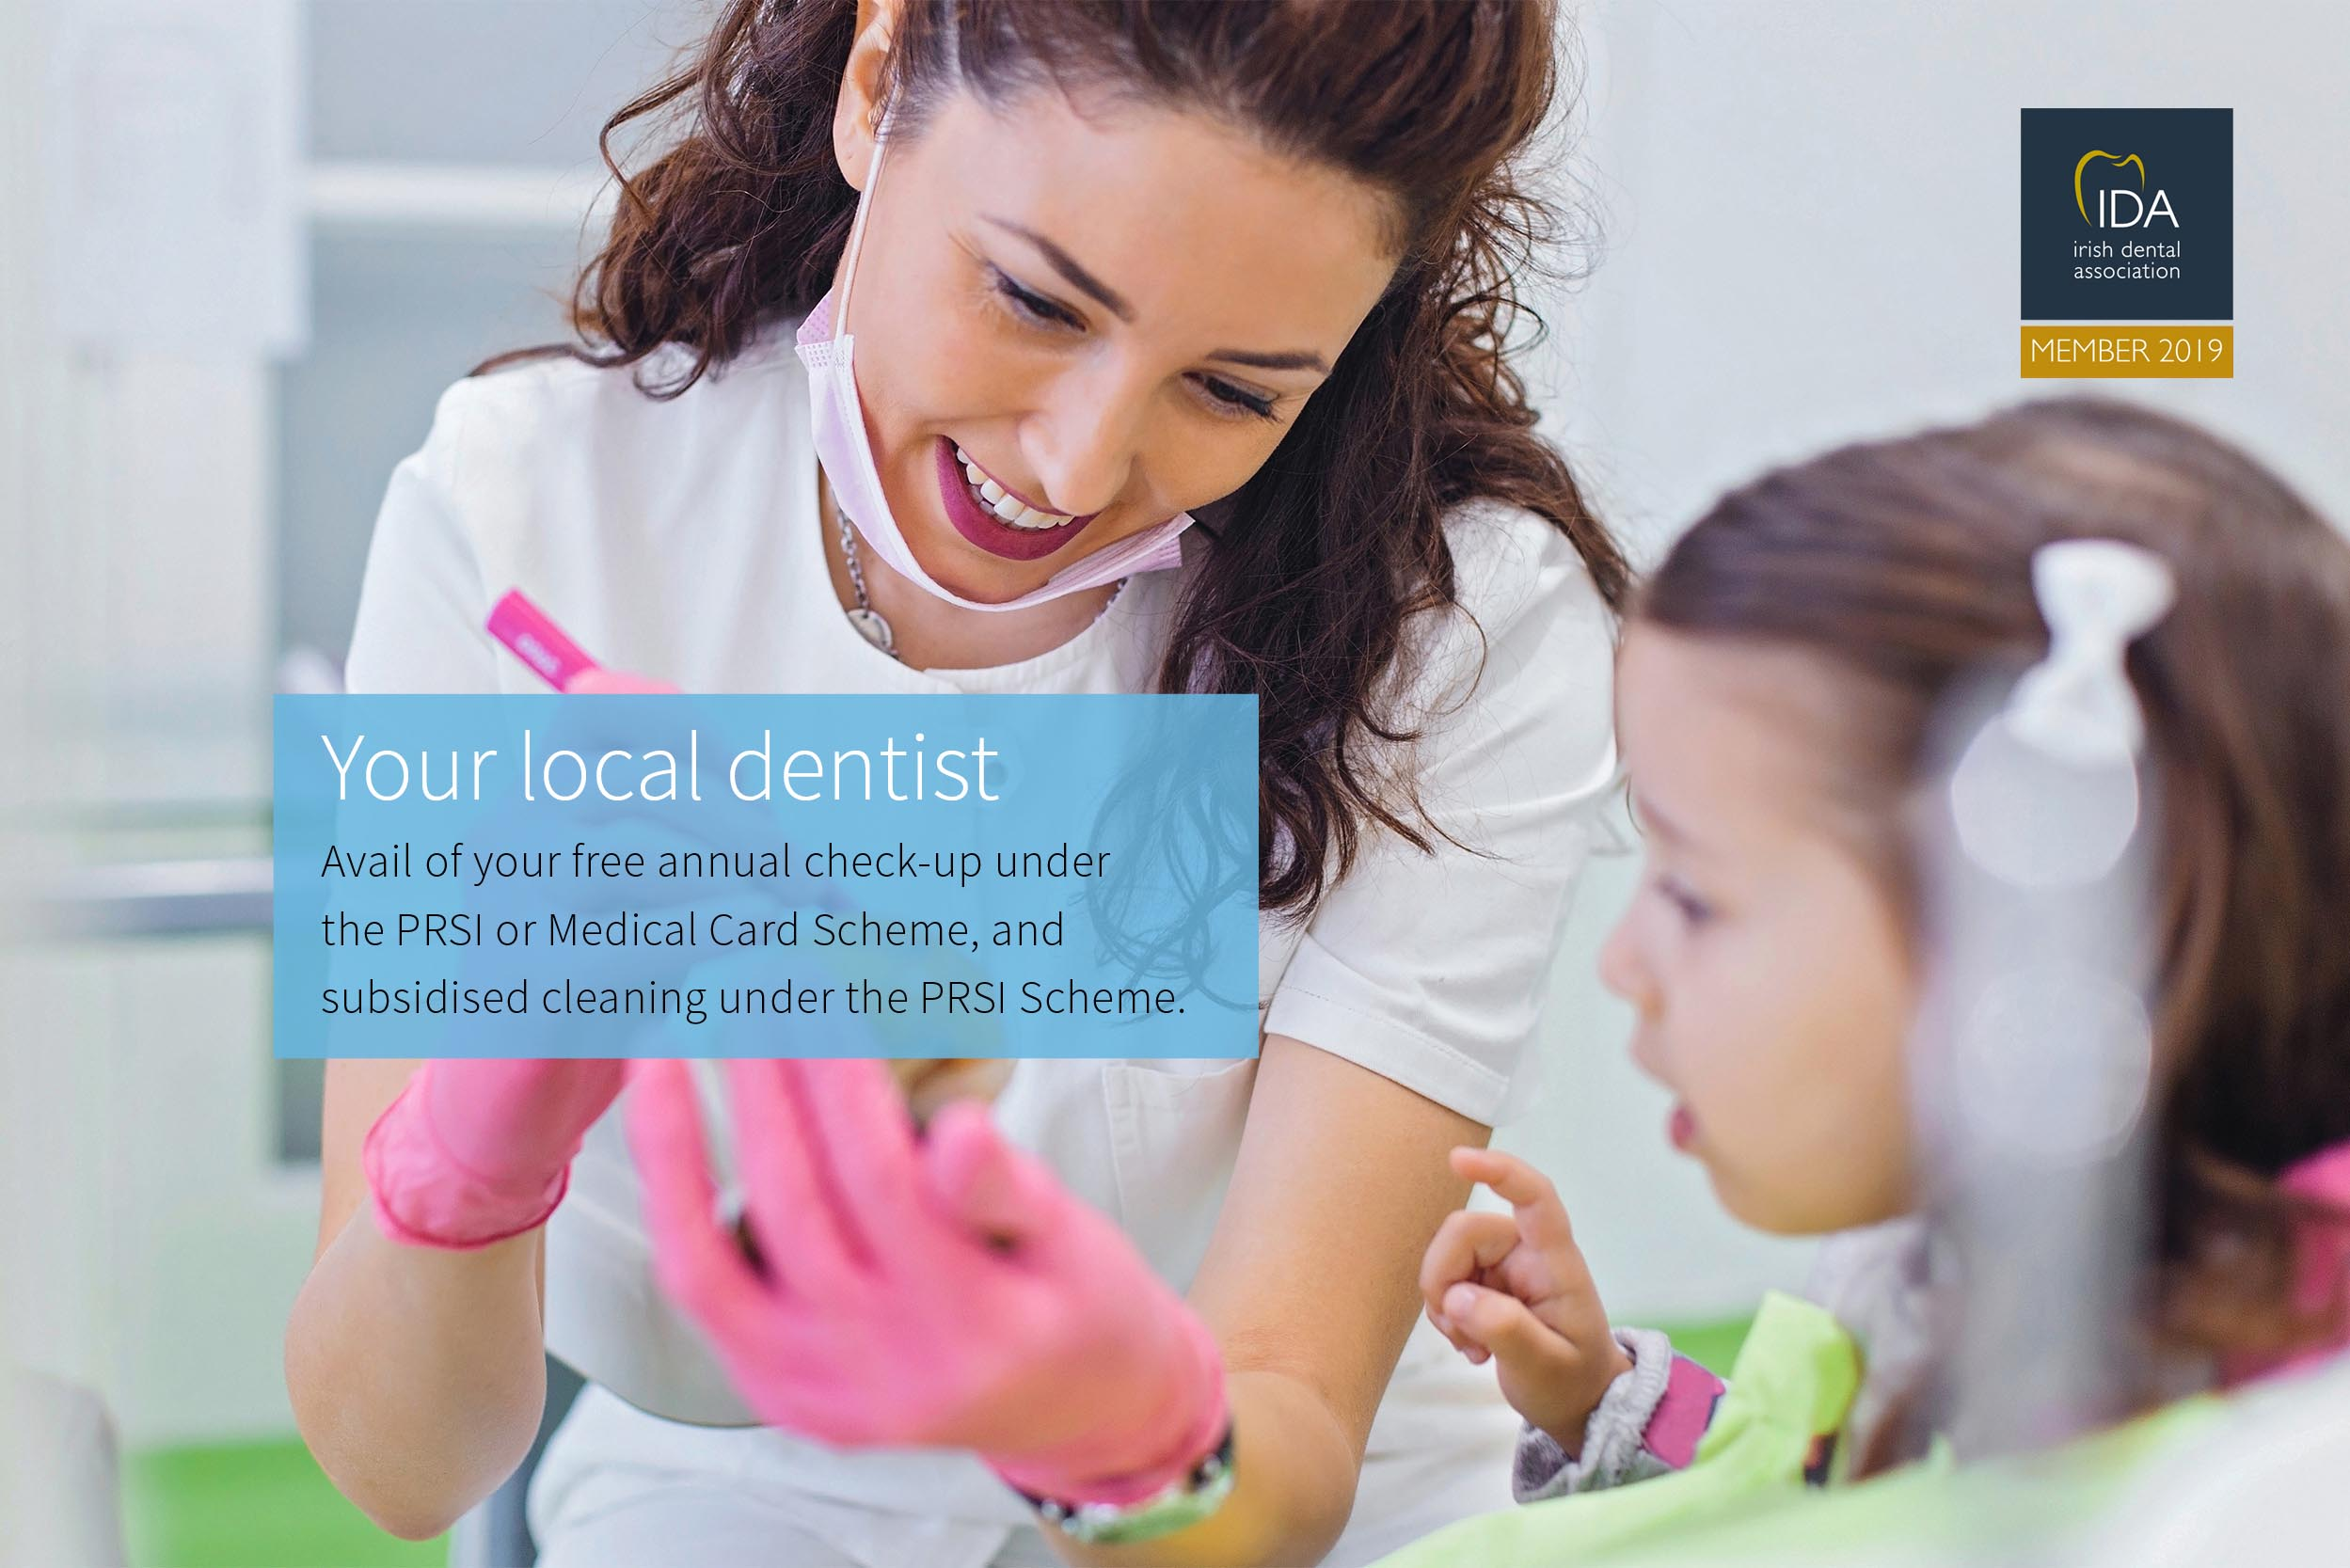 Macroom Dental